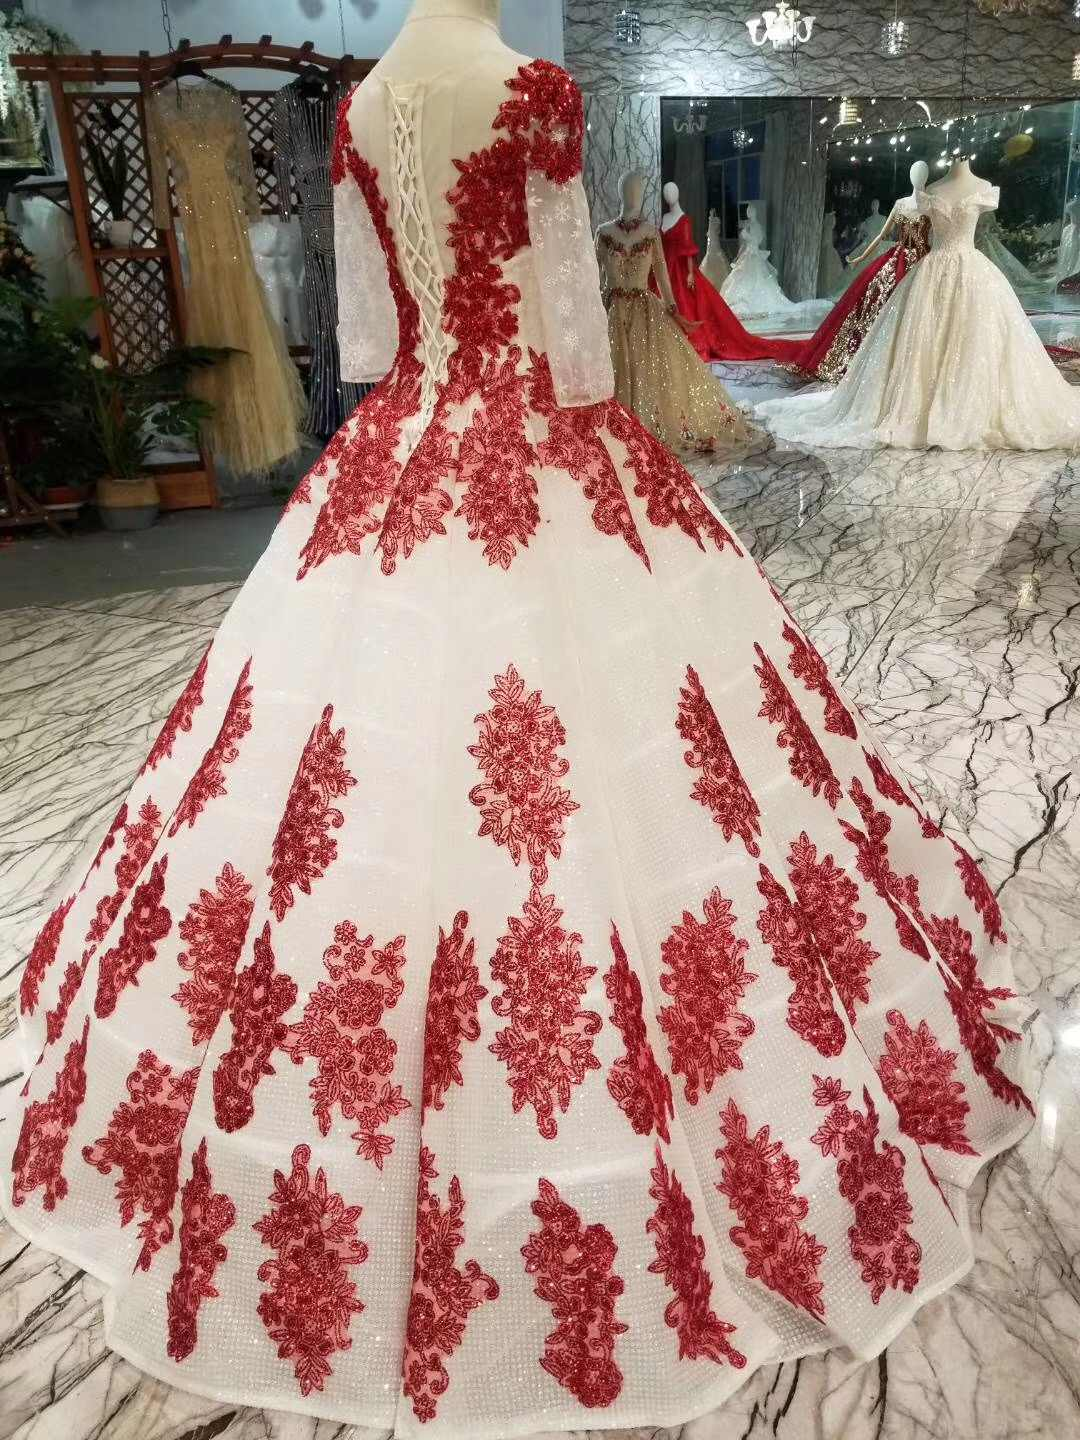 ... 2019 Latest Red Lace Tulle Ball Gown Prom Dresses Heavy Beading  Engagement Photos Red Carpet Formal ... 483518d099f2